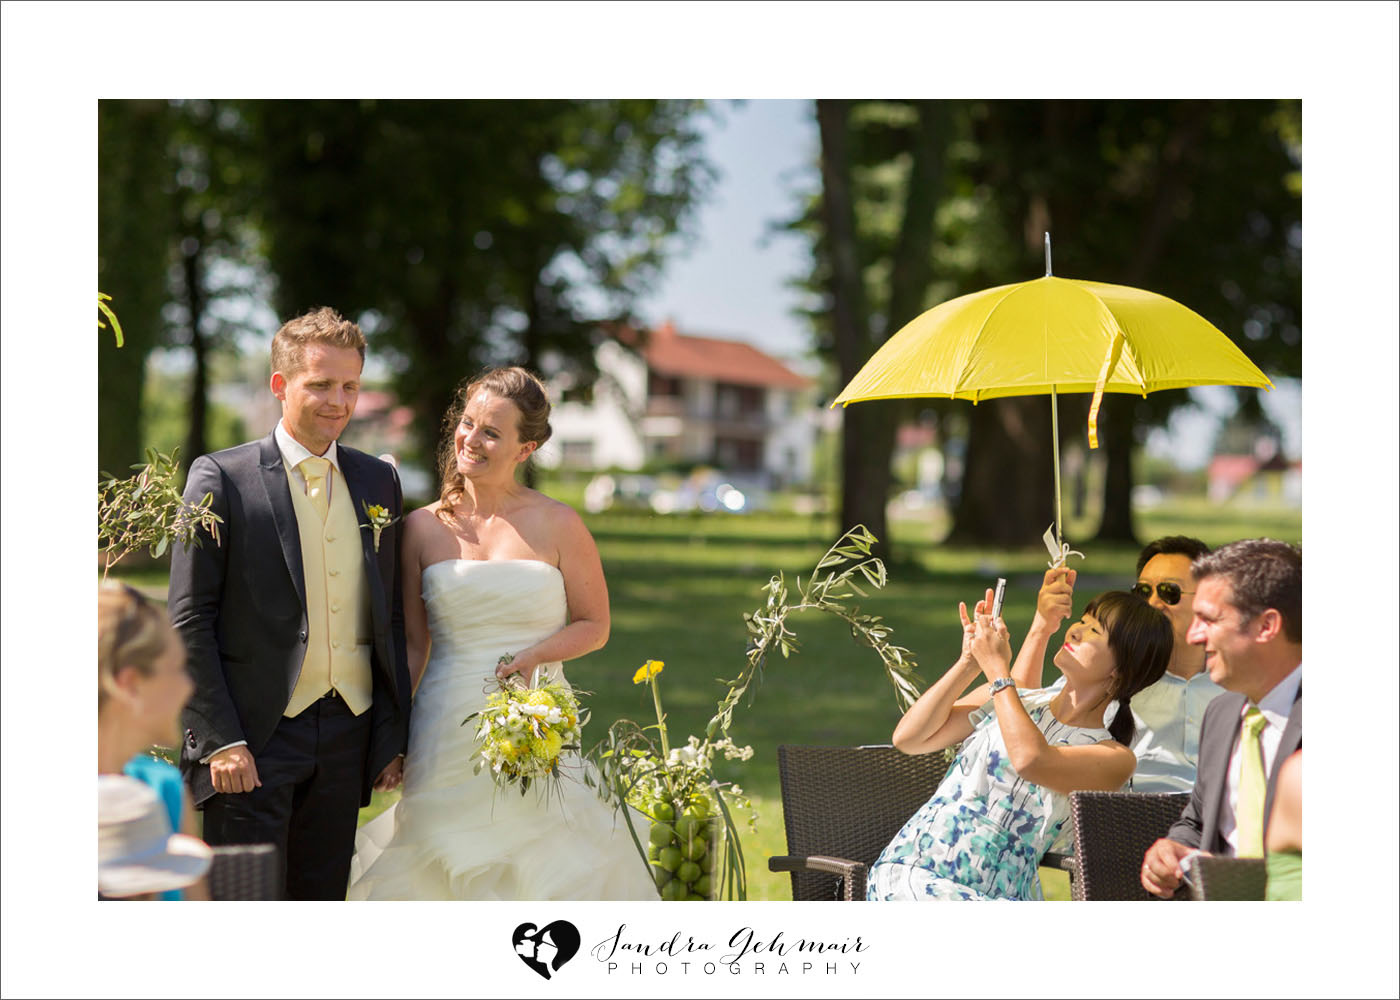 024_heiraten_am_see_spitzvilla_sandra_gehmair